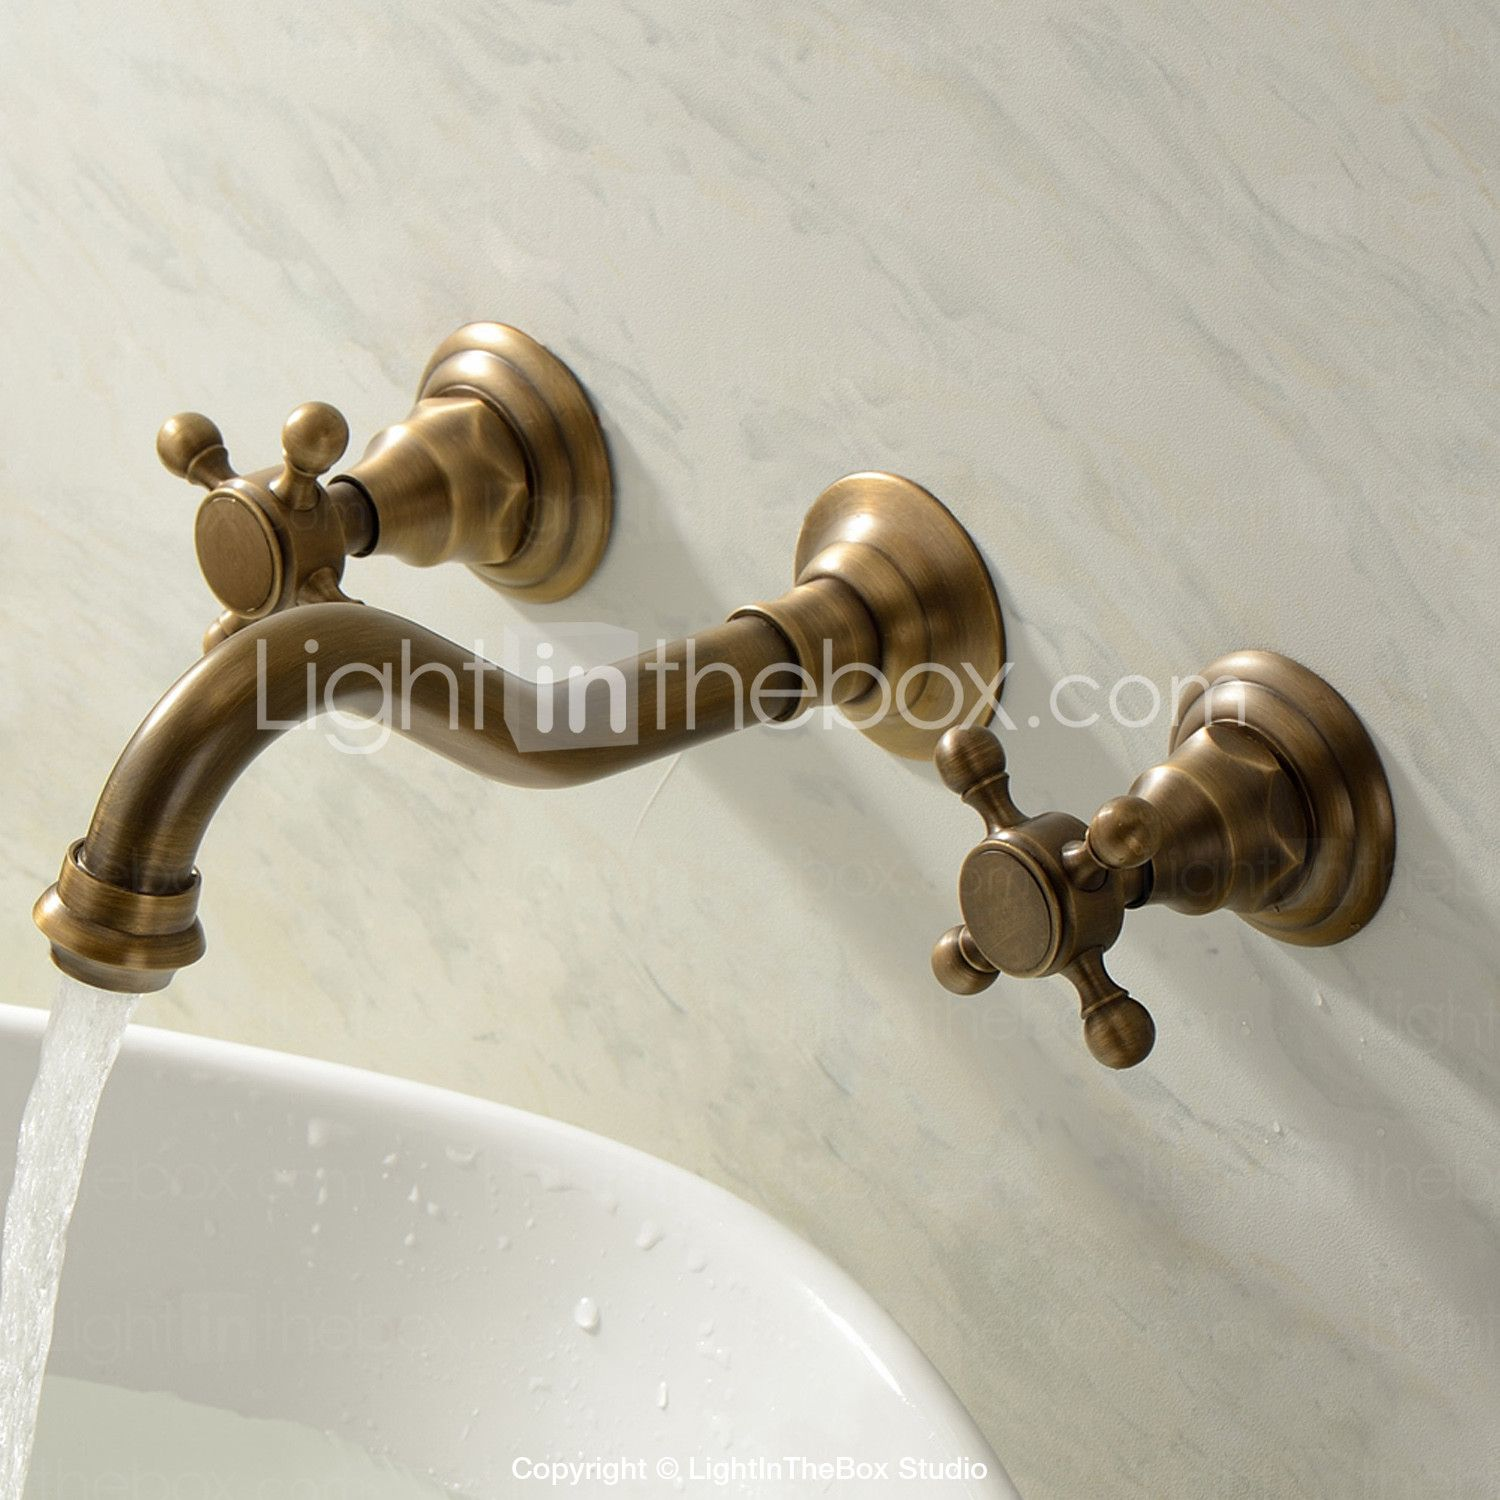 Wall Mounted Two Handles Three Holes In Antique Brass Bathroom Sink Faucet 00071477 Sink Faucets Bathroom Sink Wall Faucet